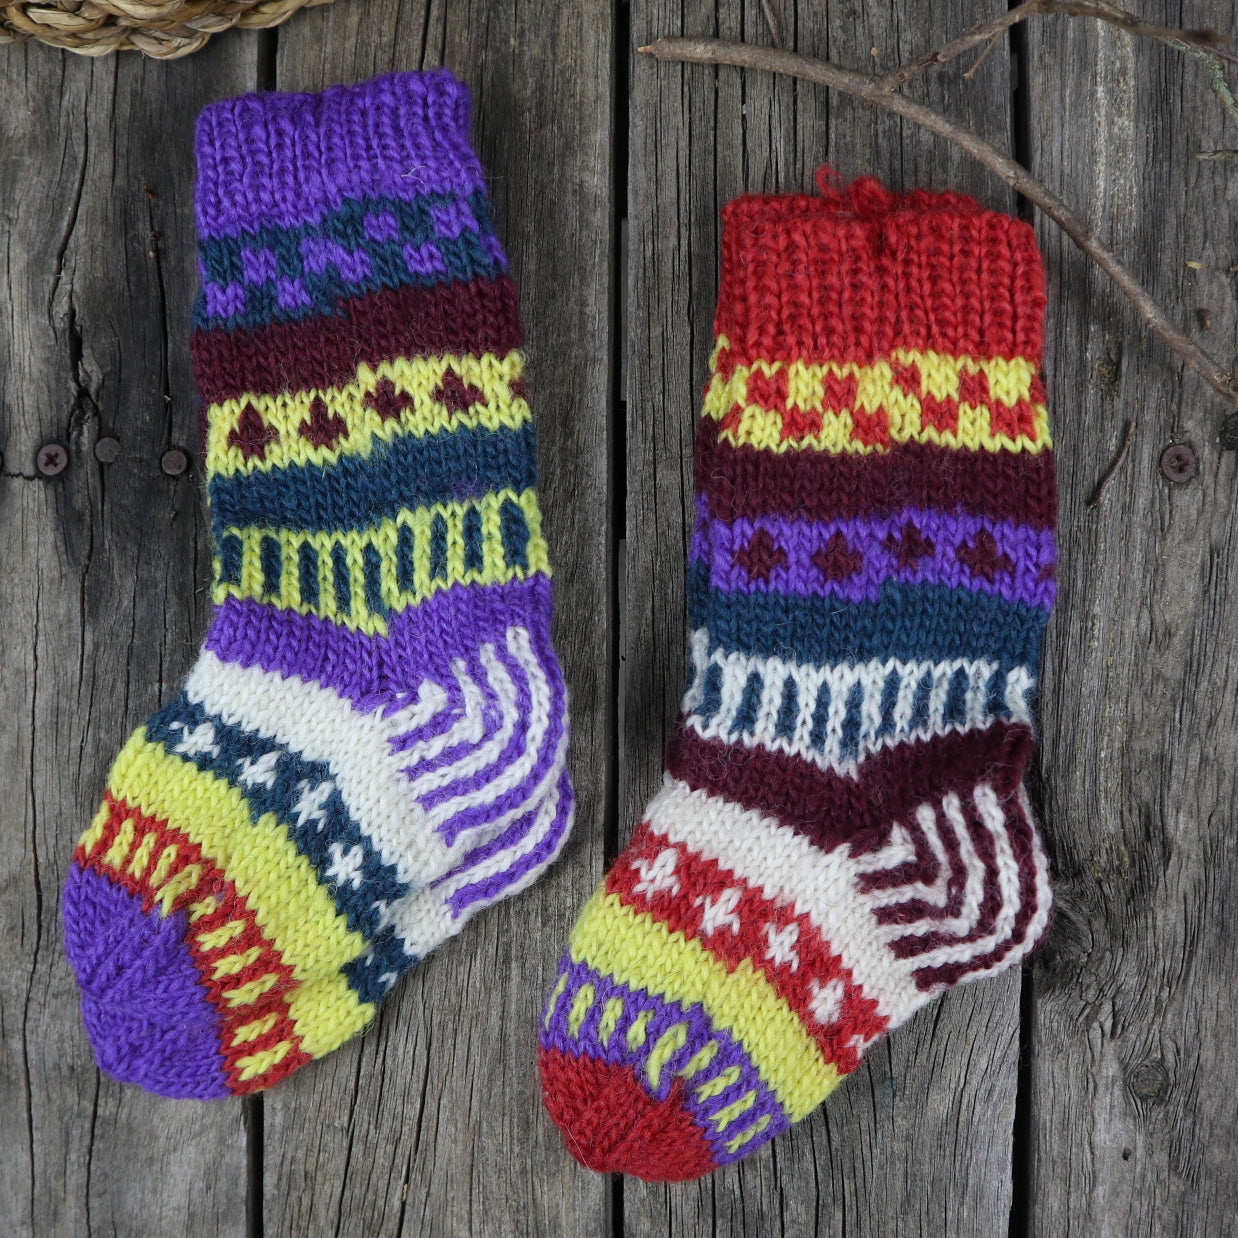 Fair Trade Ethical Children's Woollen Patterned Socks in Purple, Green and Yellow